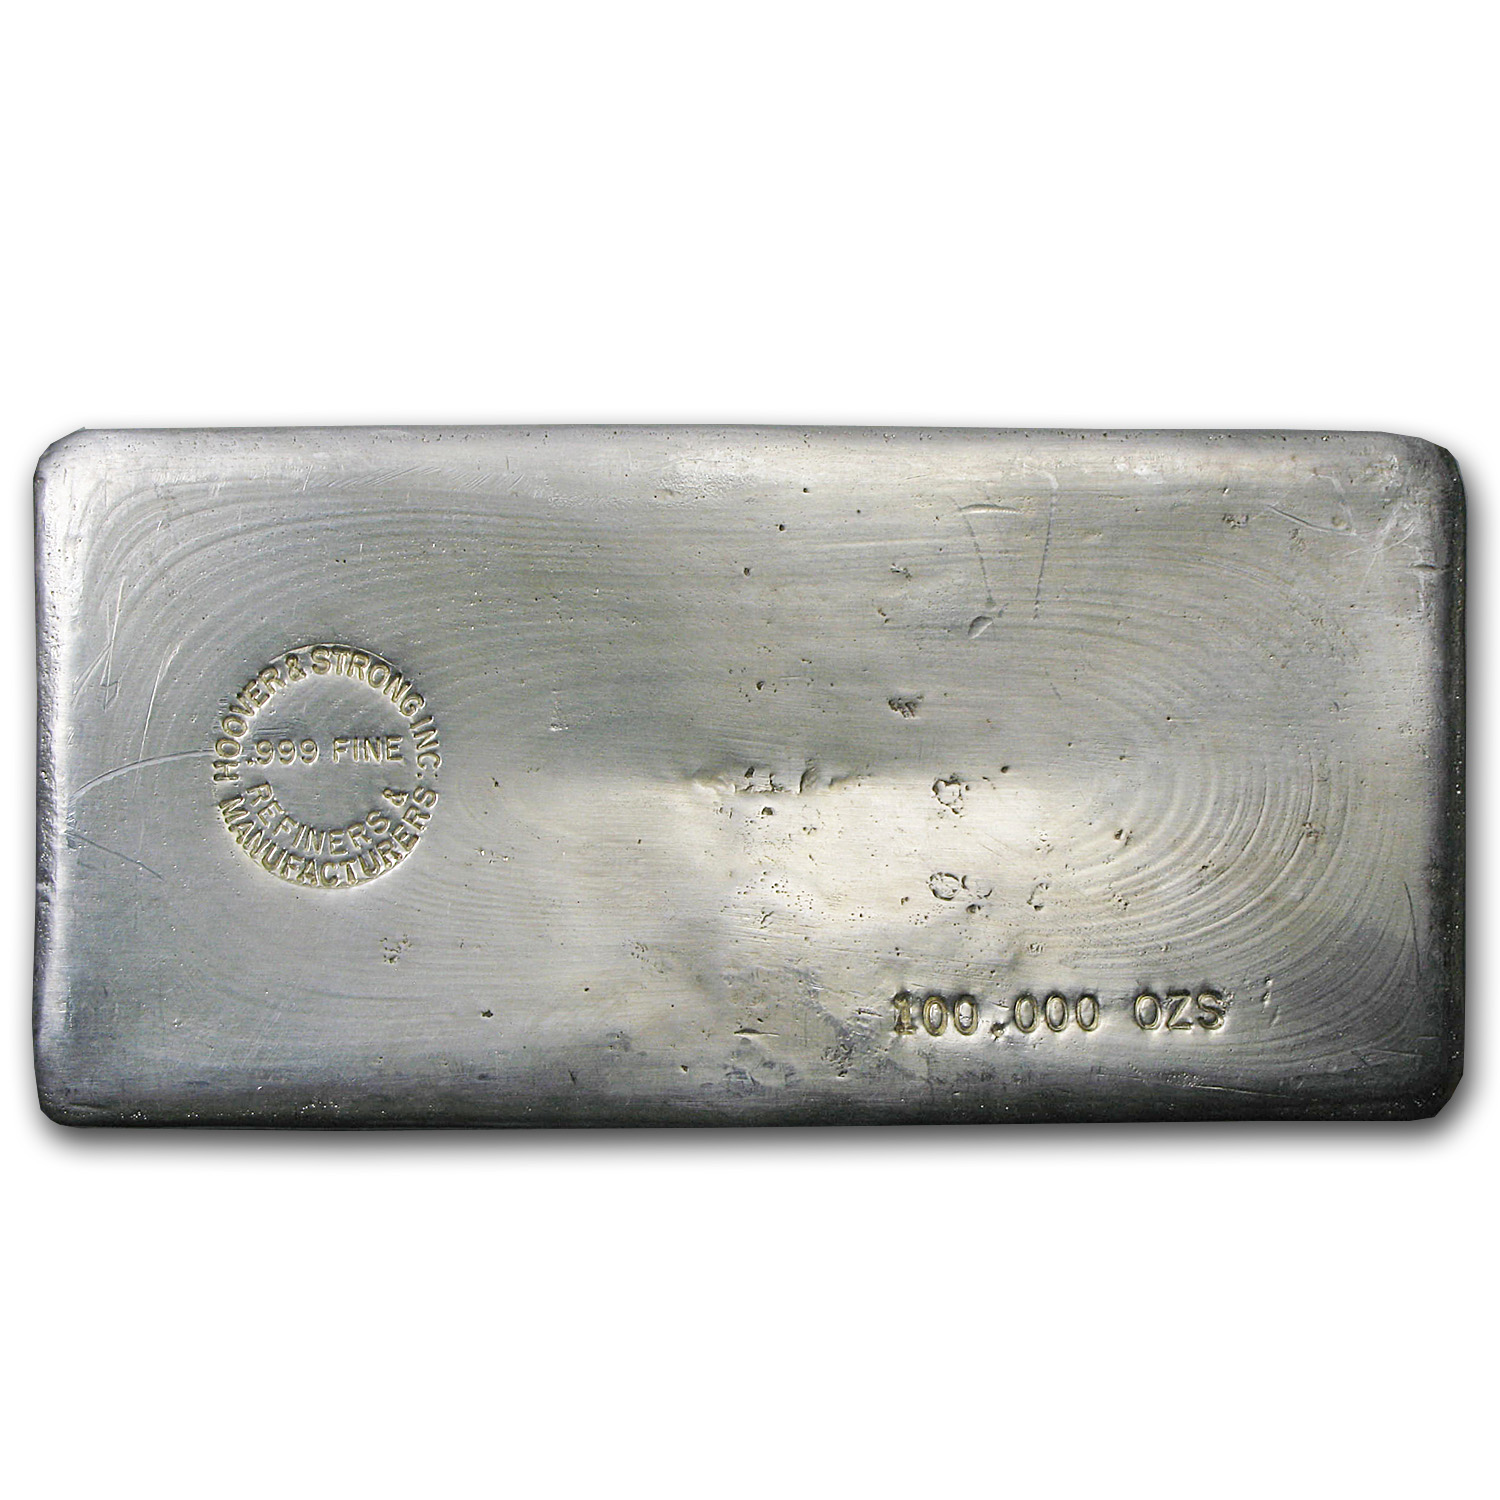 100 oz Silver Bars - Hoover & Strong